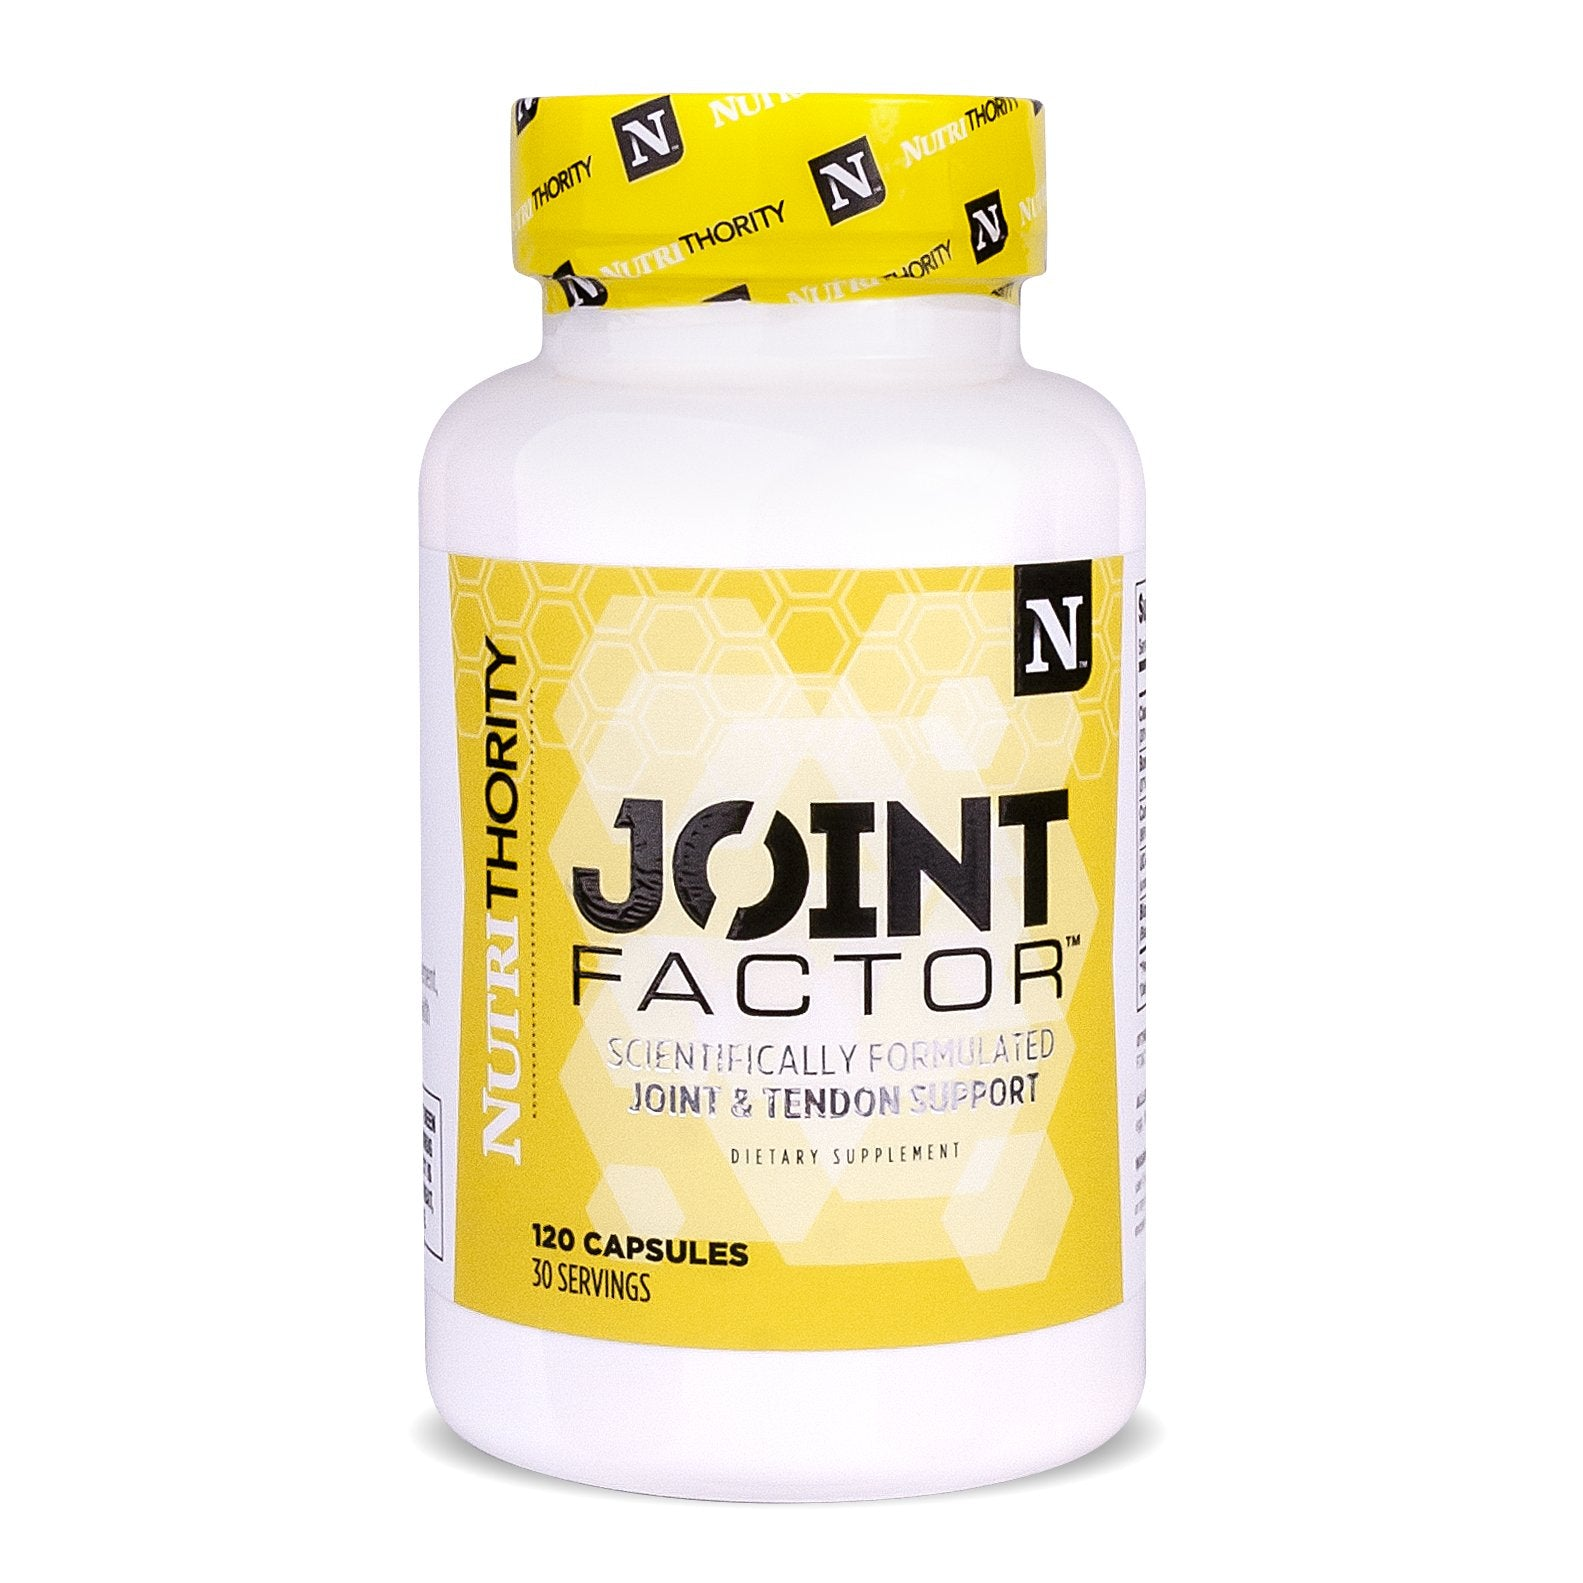 Joint Factor - joint and tendon support supplement